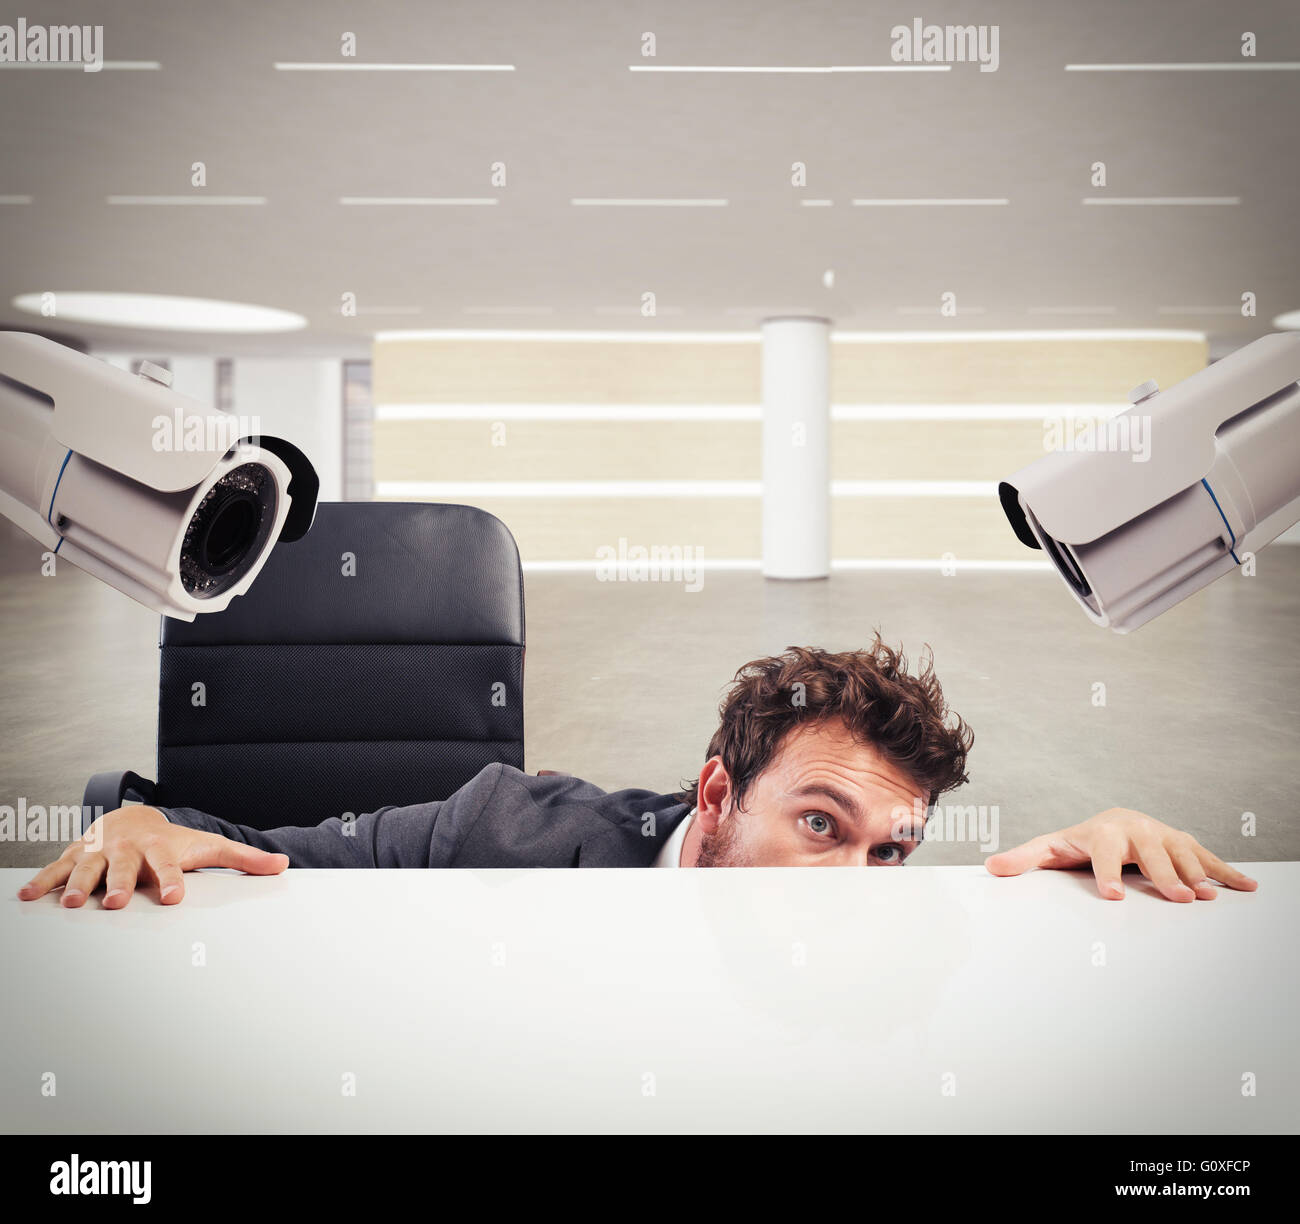 Hiding by the monitoring circuit - Stock Image